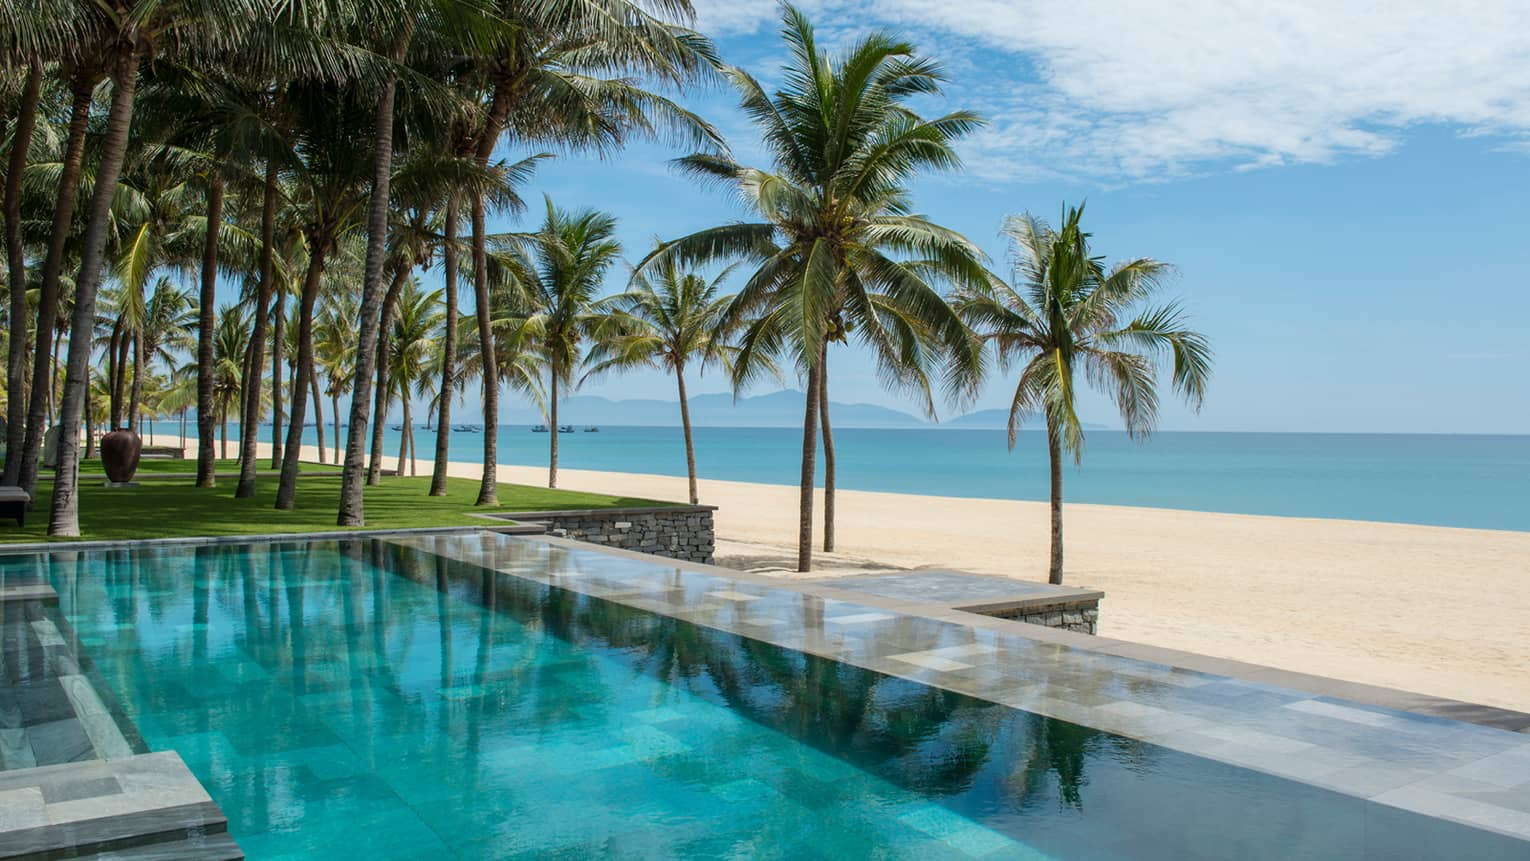 Tall palm trees between stone outdoor swimming pool and white sand beach